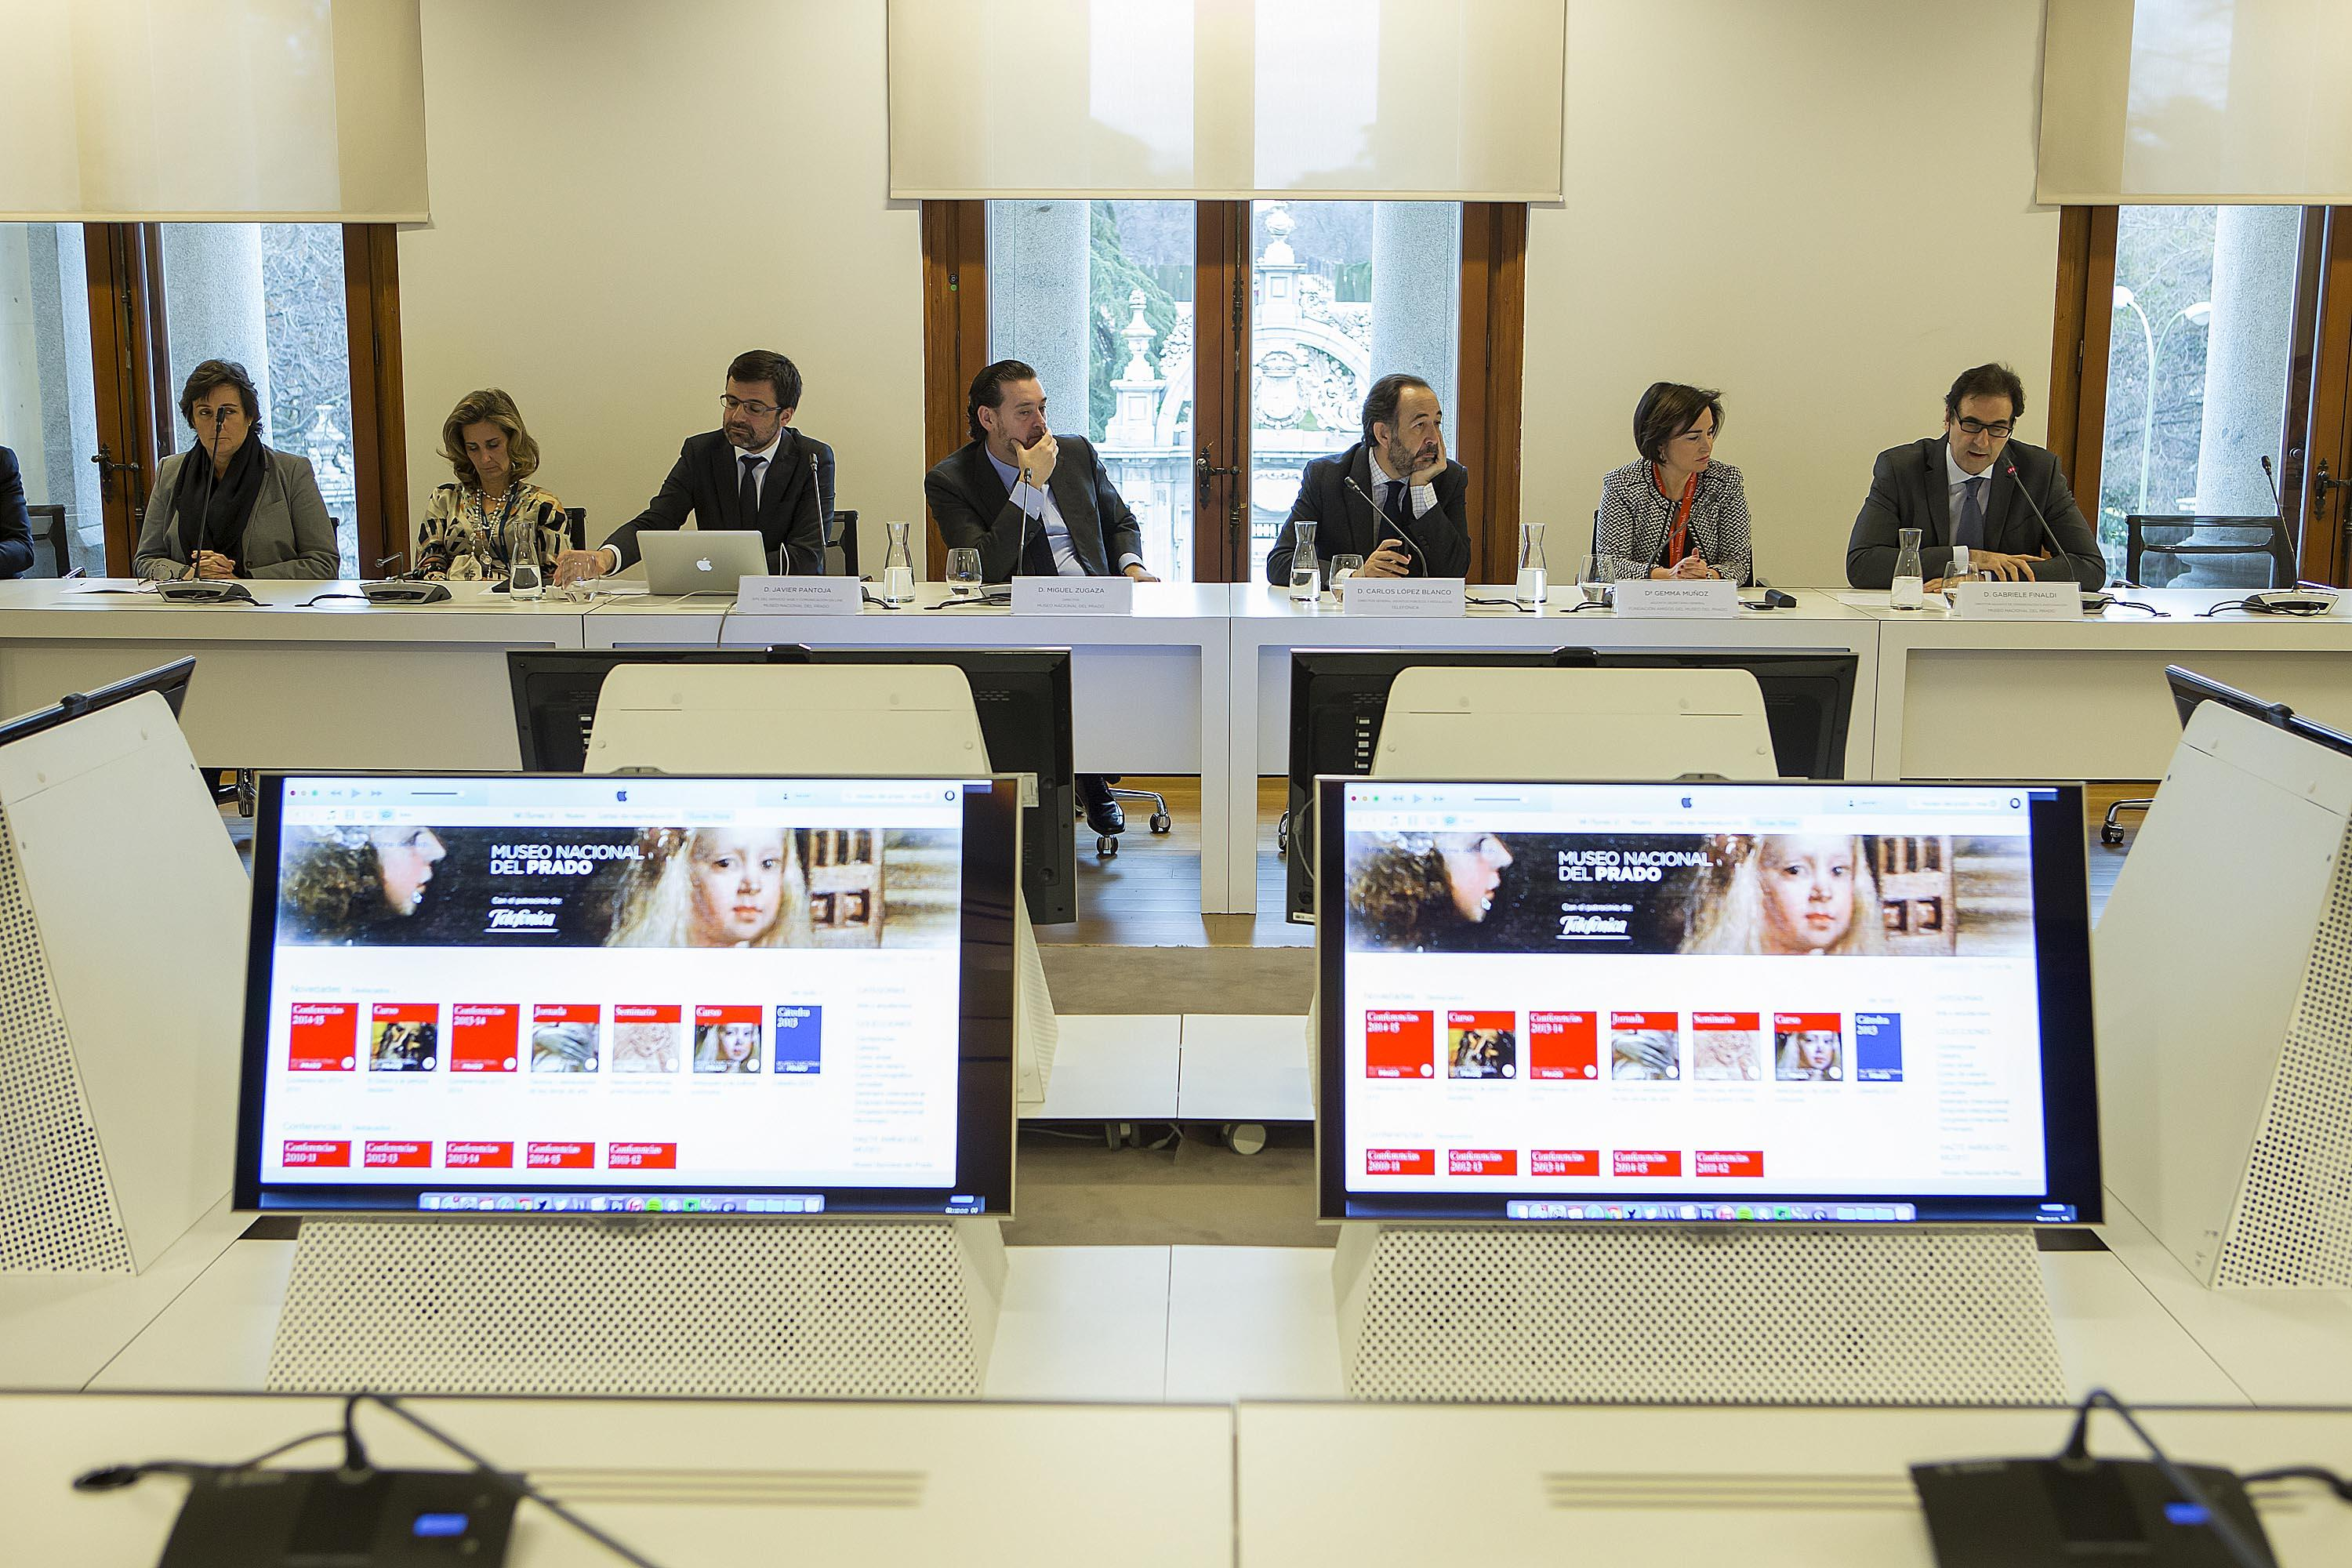 The Prado joins two innovative educational projects, iTunes U channel and MiriadaX